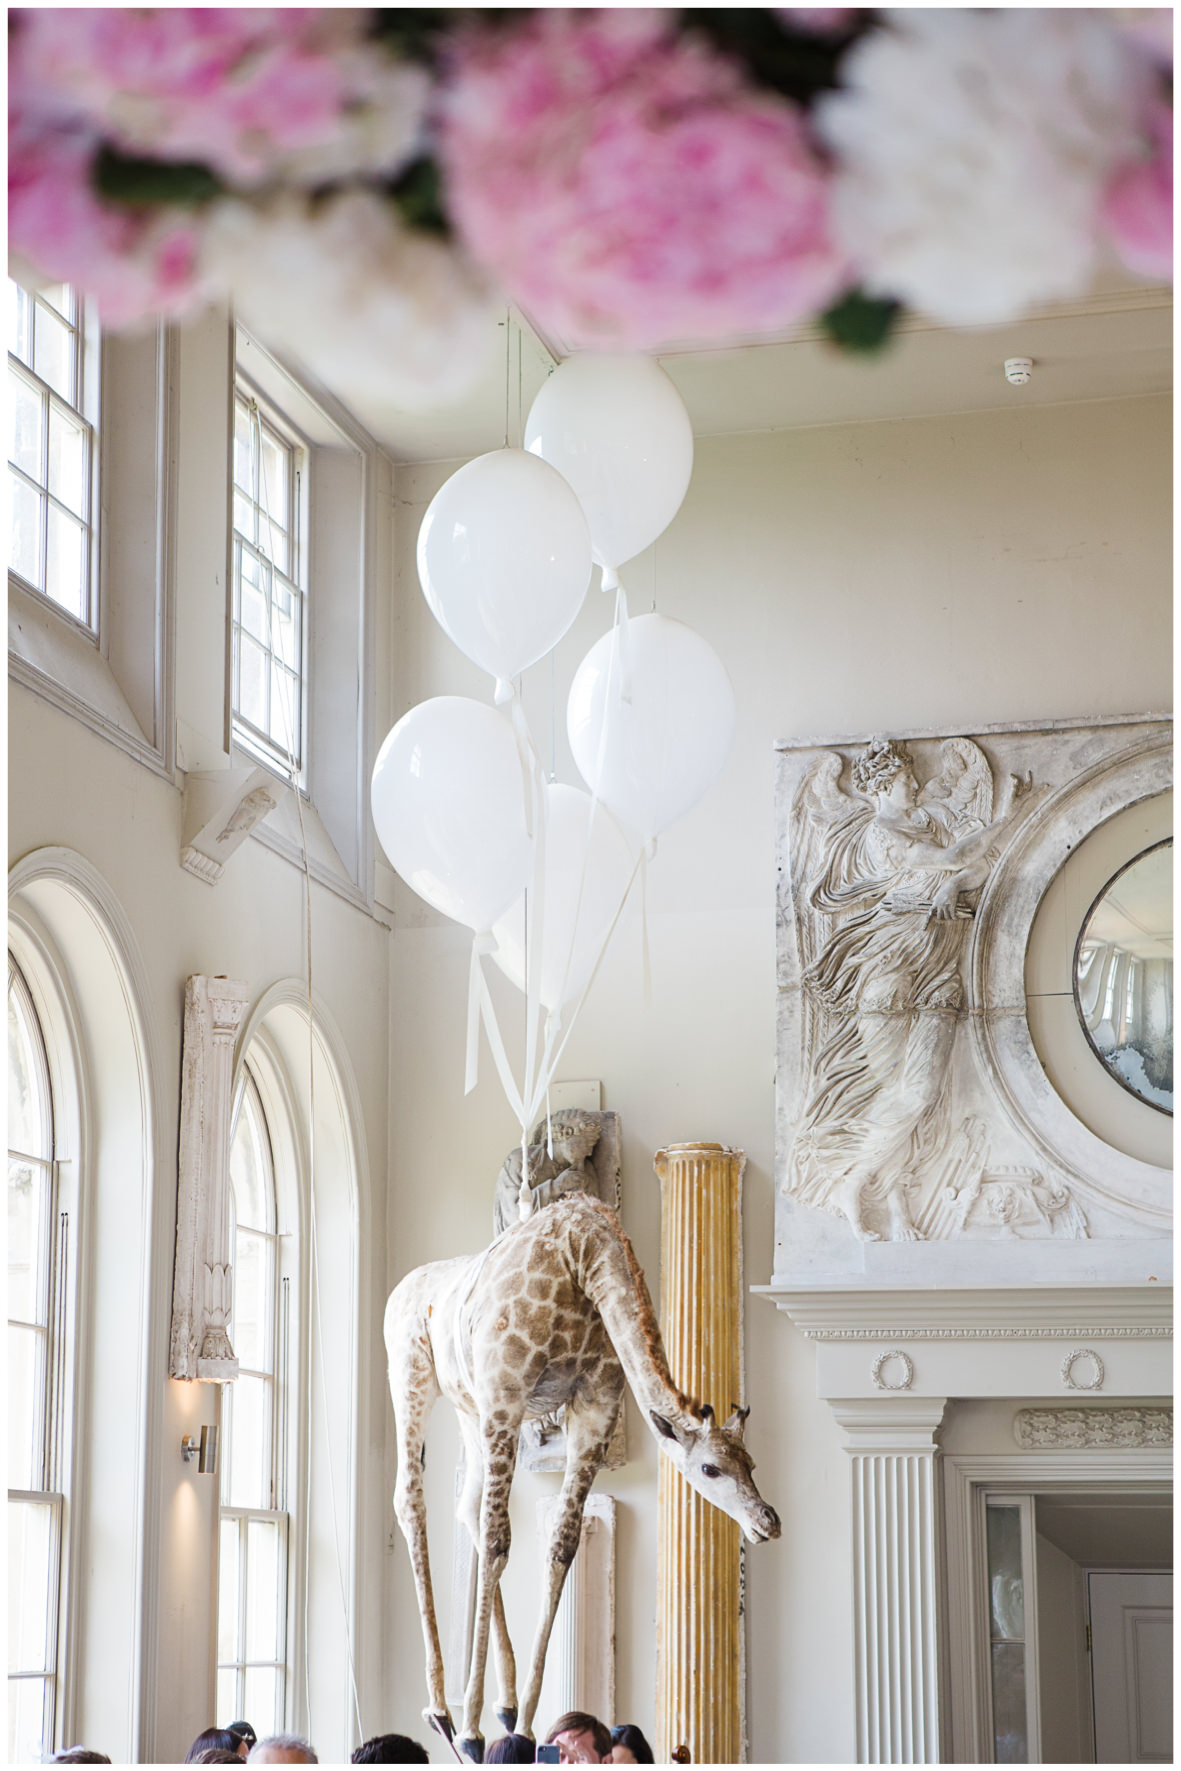 Lucy Davenport Photography, Aynhoe Park, Oxfordshire, wedding venue, Rock My Wedding, Orangery, hanging giraffe